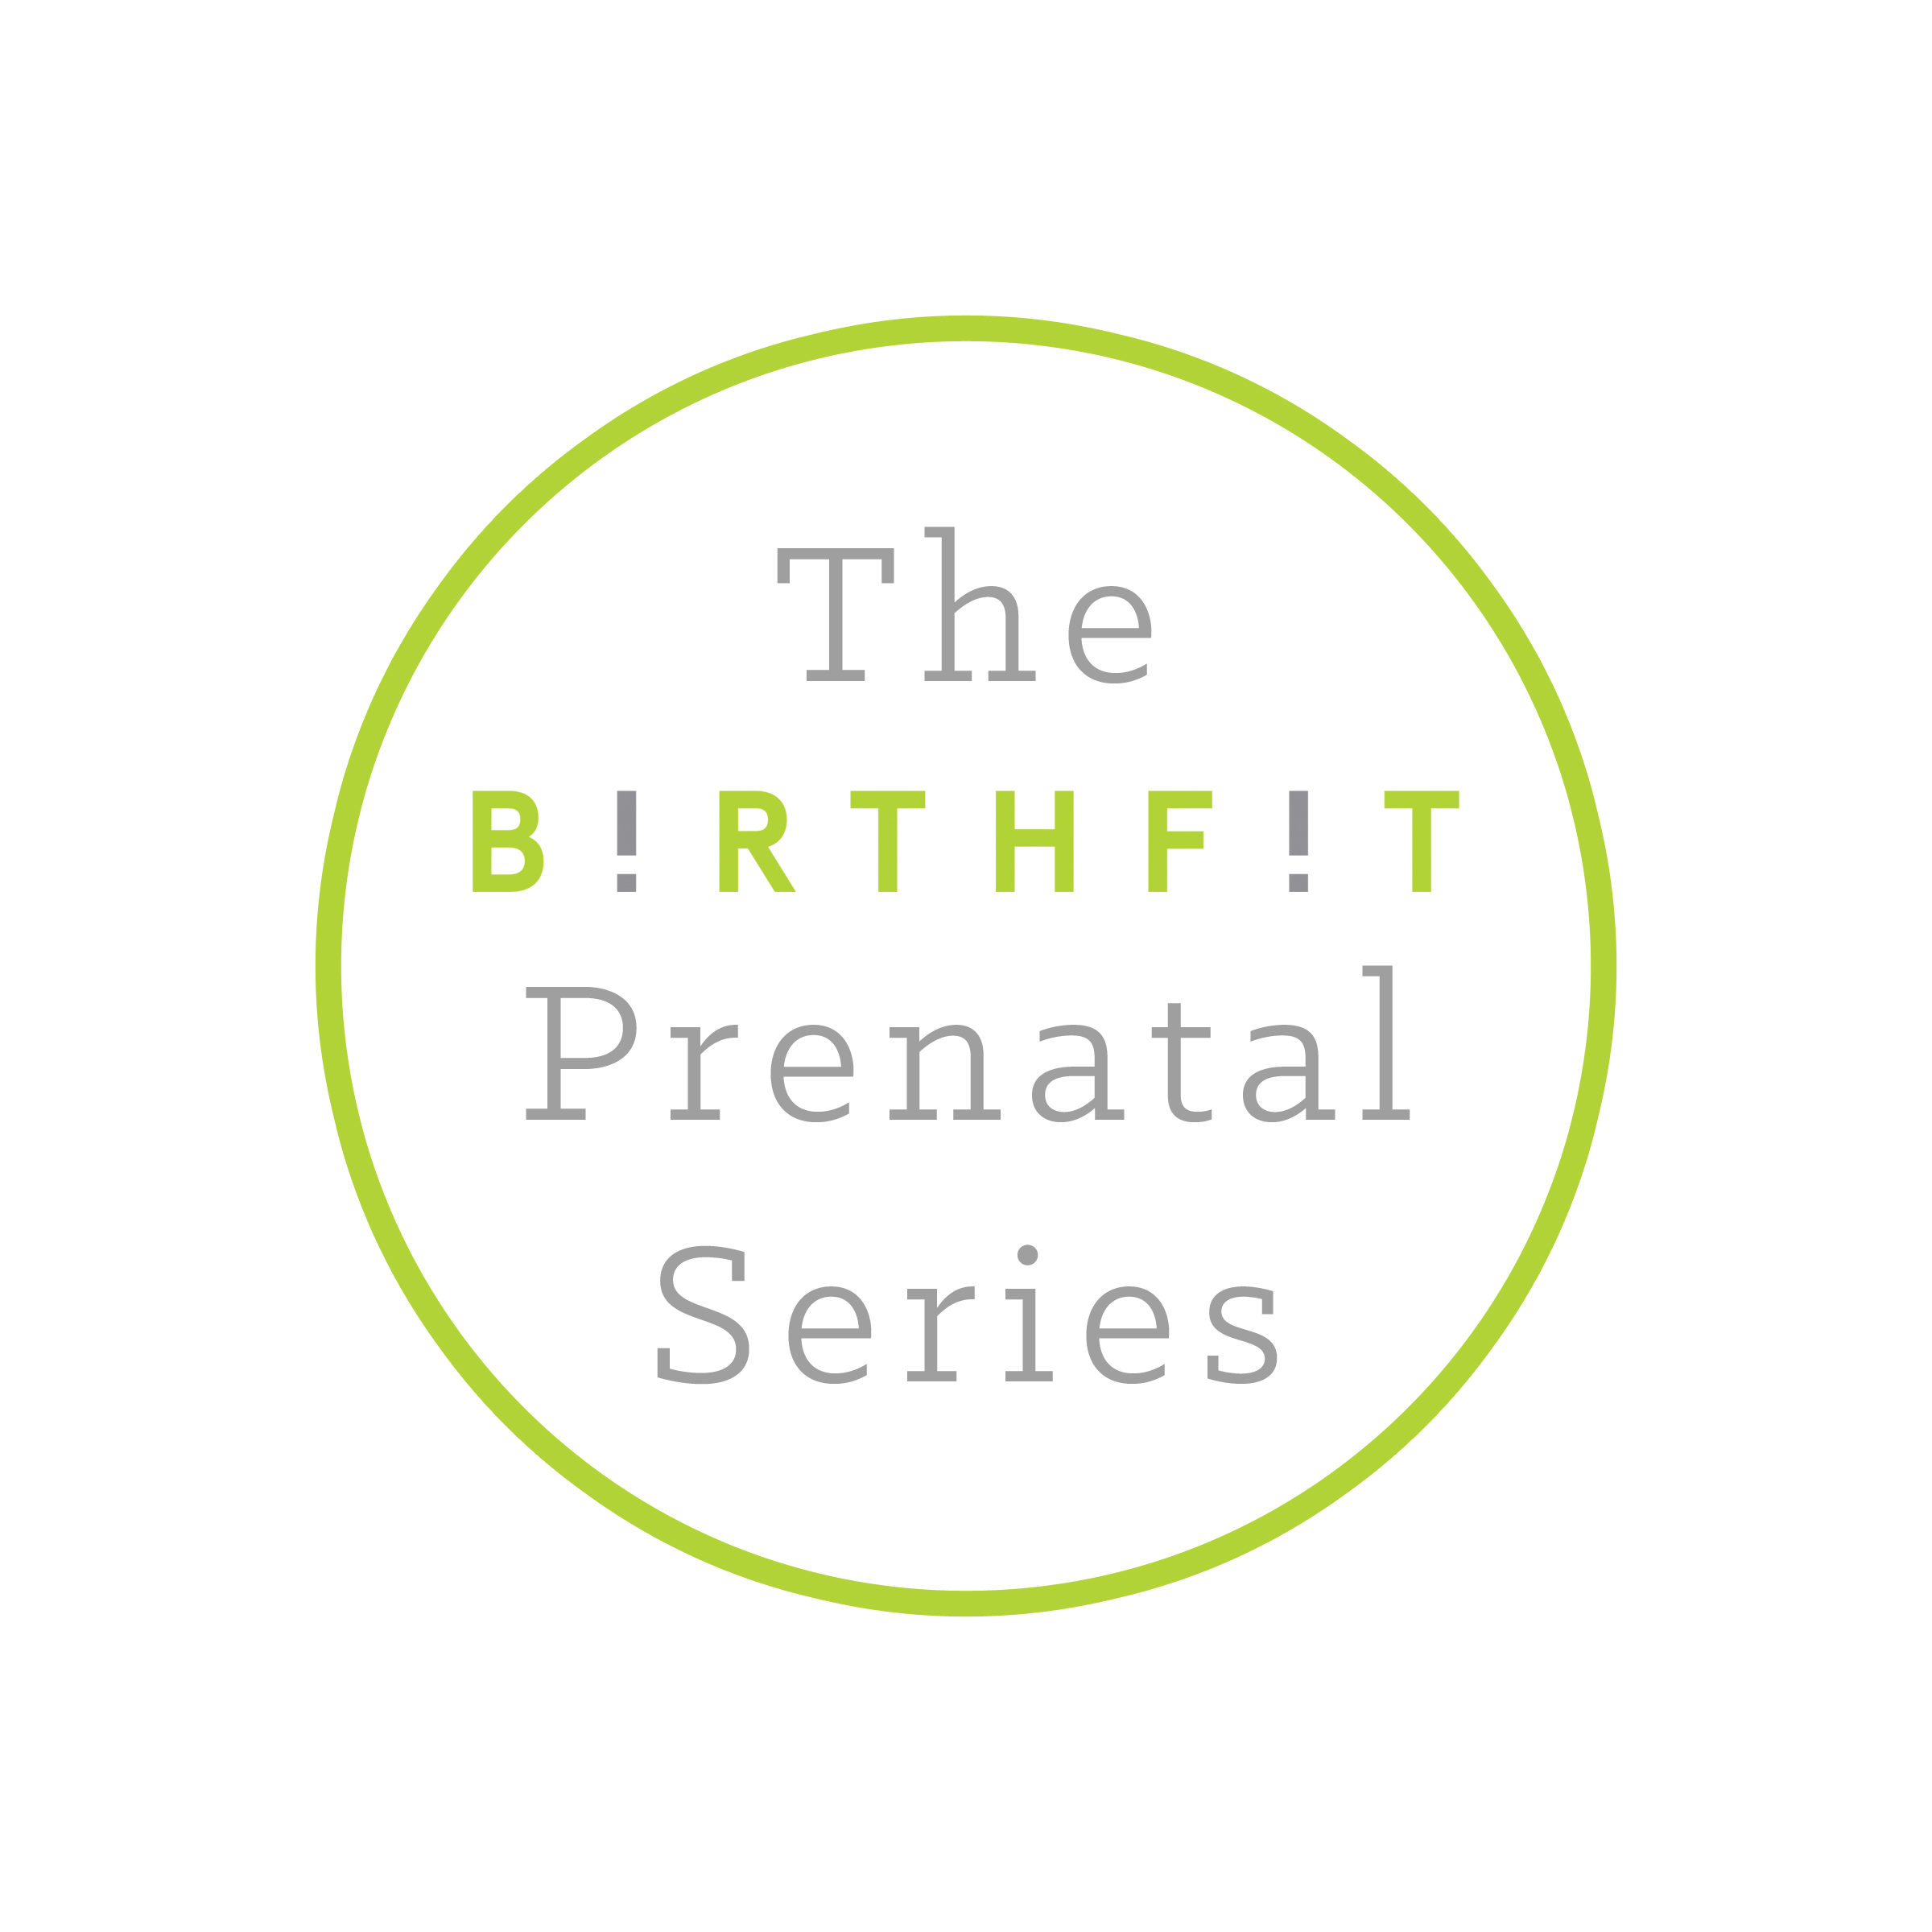 CUrrently Pregnant? - Congratulations! We're here to help you rock your pregnancy with confidence, intention, and preparation. Sign up for our prenatal training program and get moving today. You may also want to read our blog, listen to our podcast, or set up a consultation with an expert.